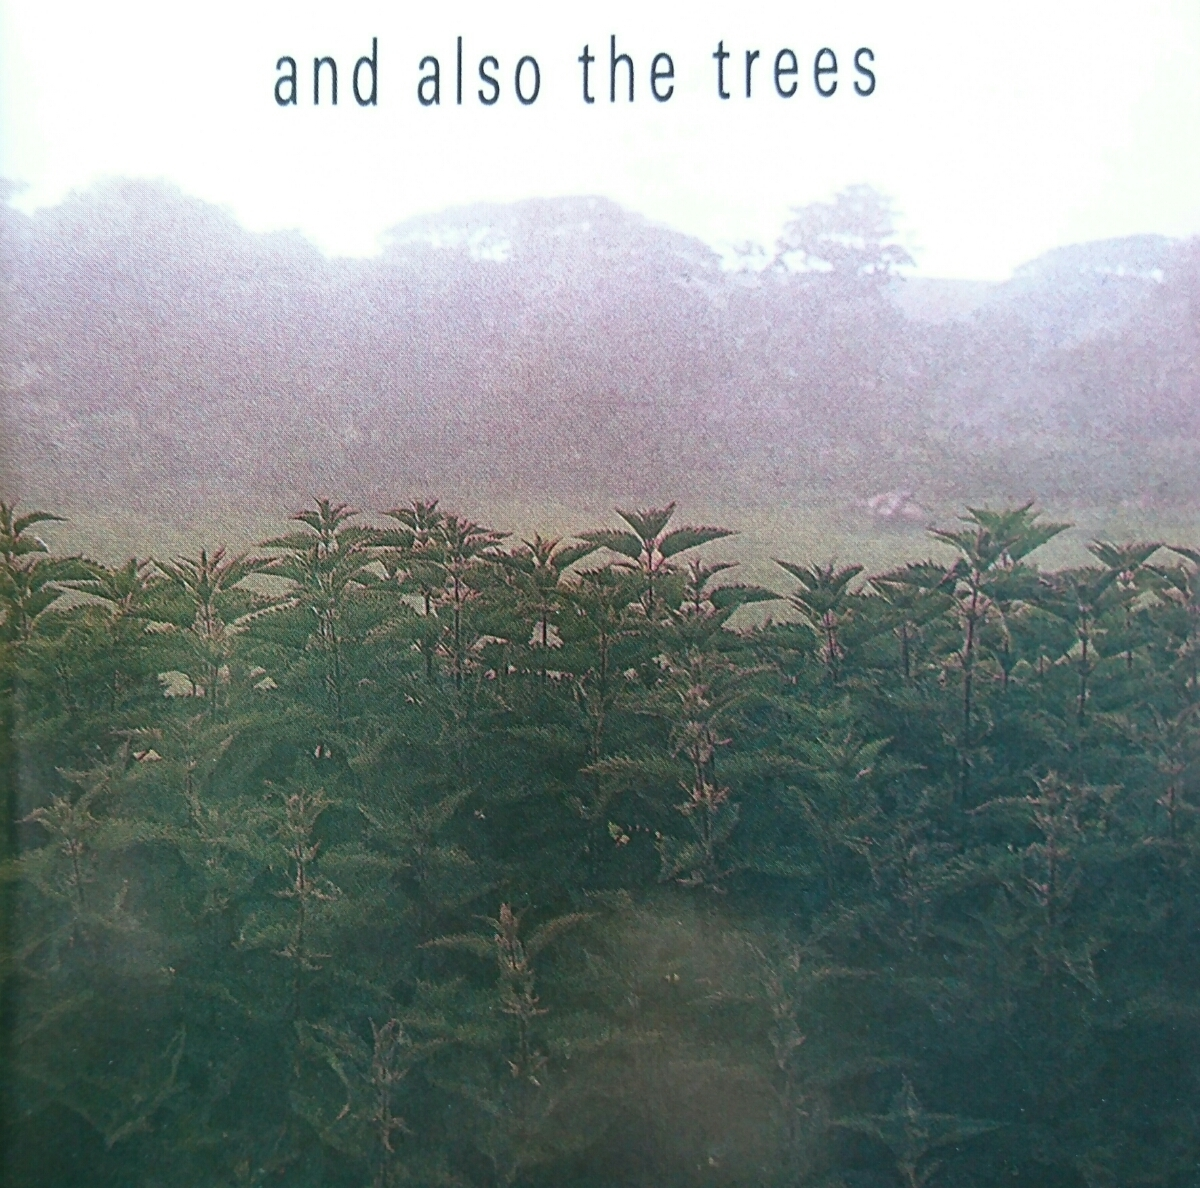 CD【ネオ・サイケ名盤】And Also The Trees『And Also The Trees』1st Album ▽The Cure/Joy Division/Neo Psychedelic/New Wave/_画像1